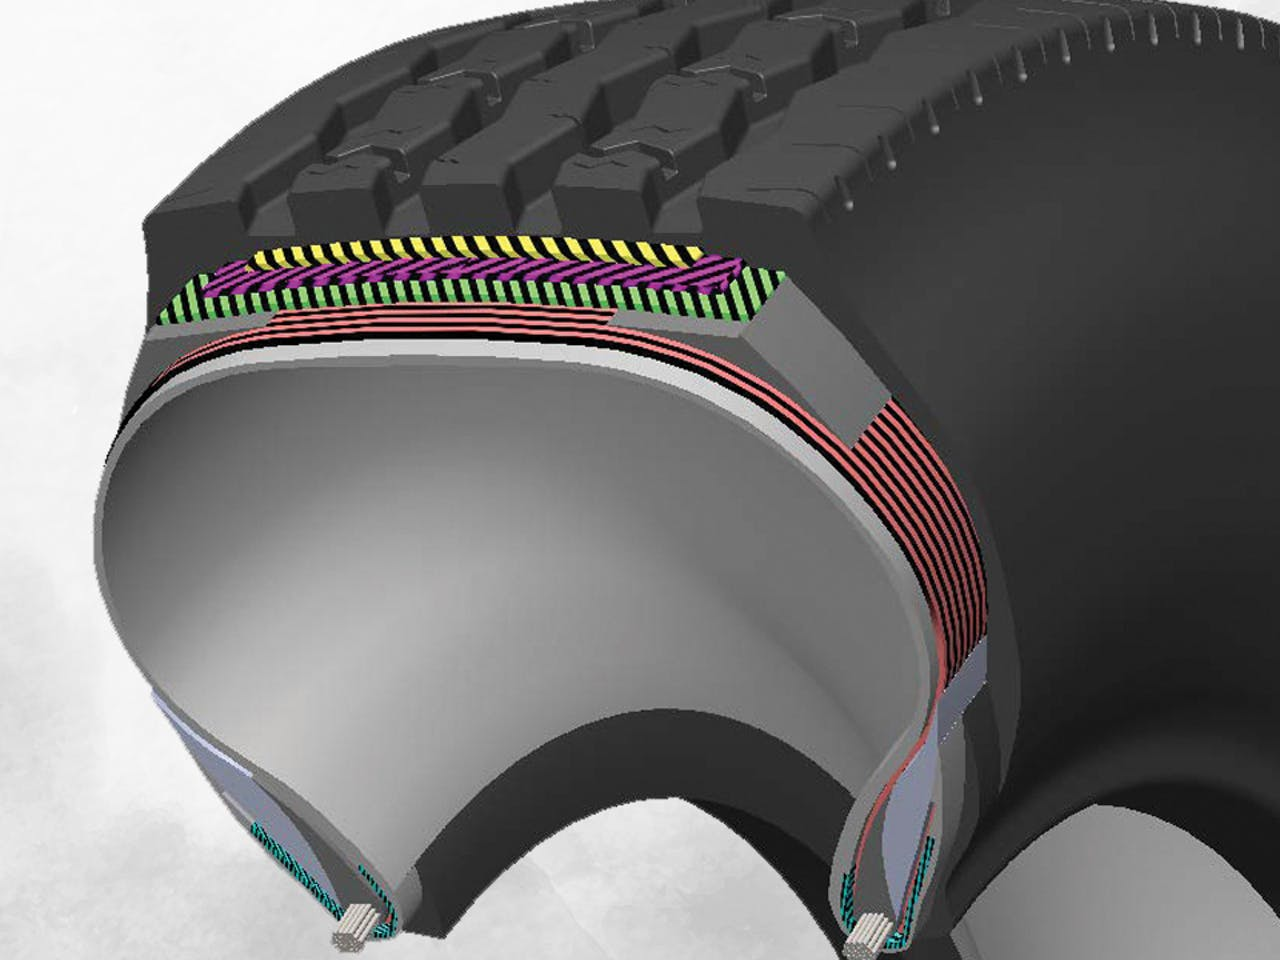 Heavy Duty G-rated Tires